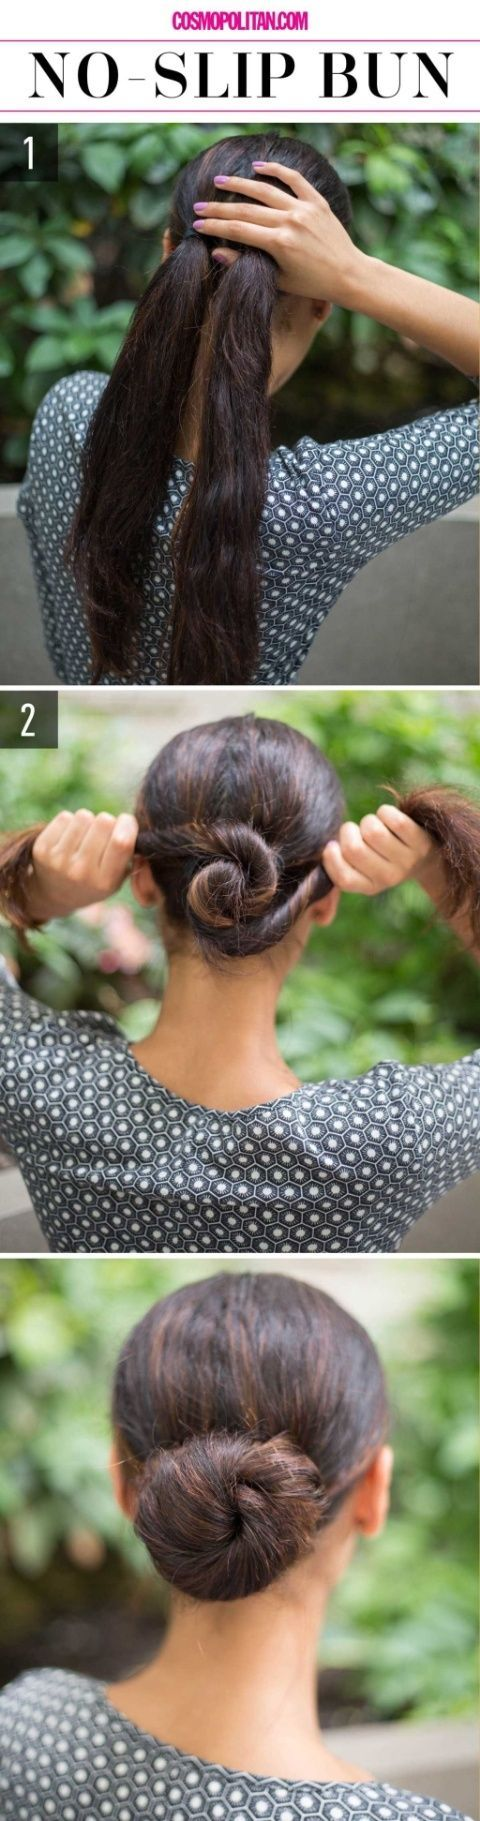 supereasy hairstyles for lazy girls who canut even hair style